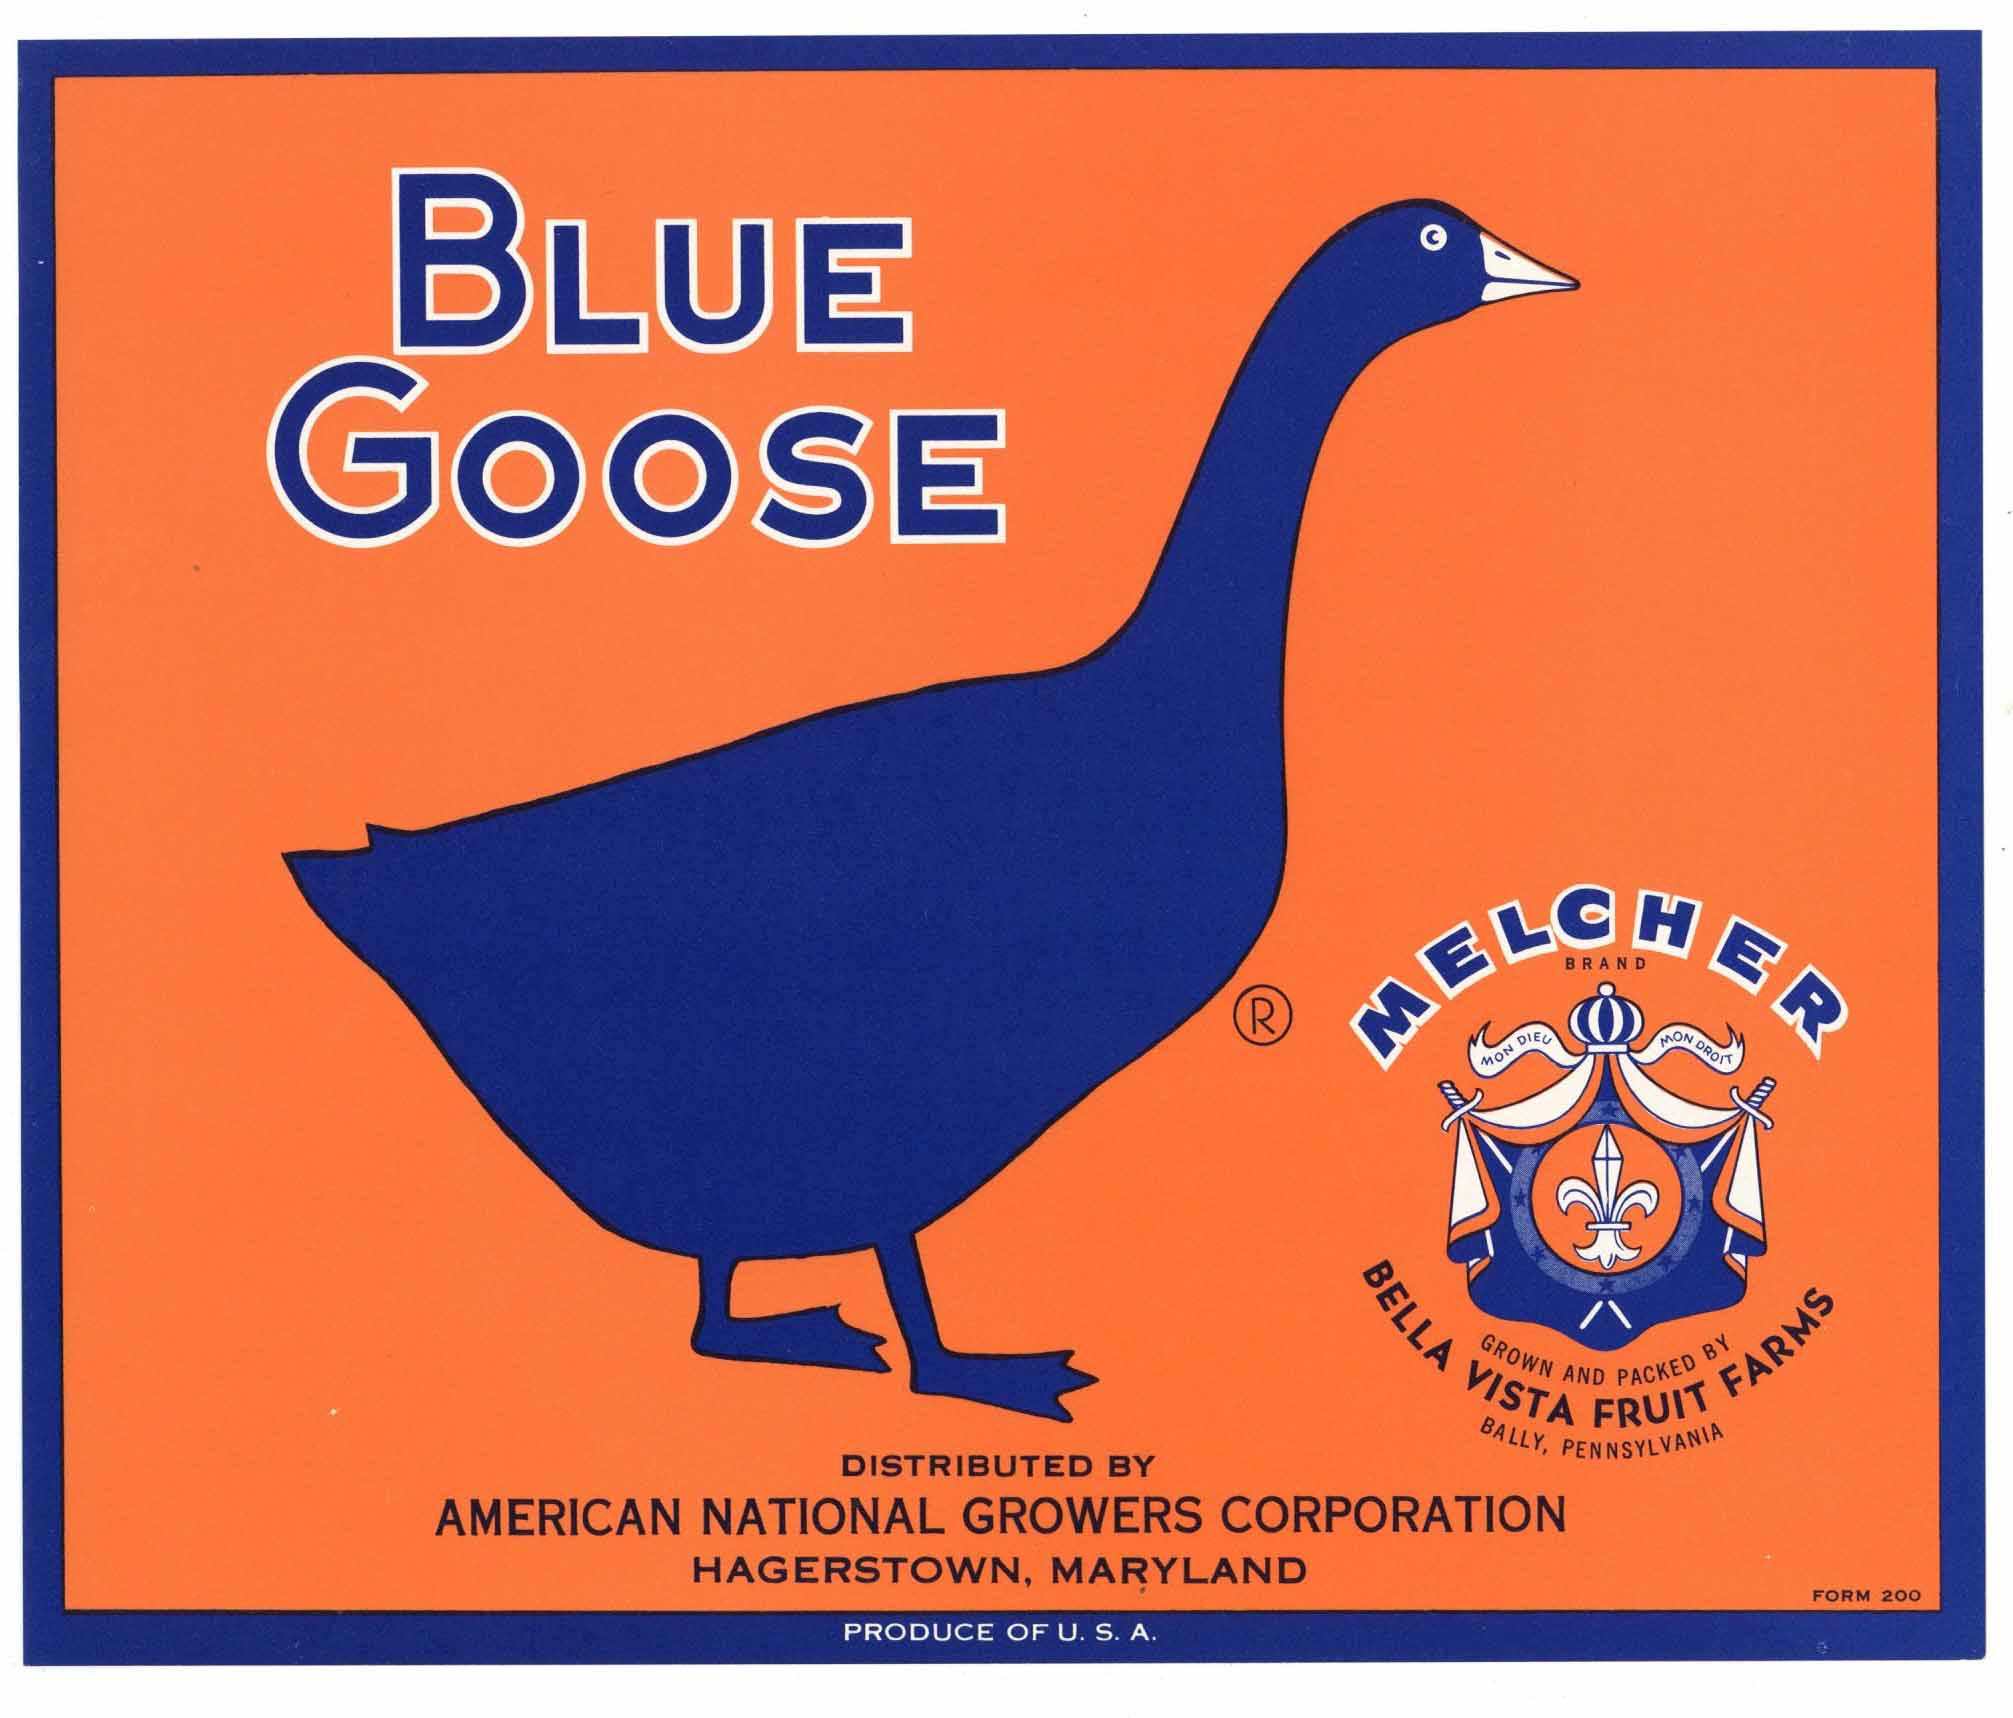 Blue Goose Brand Vintage Hagerstown Maryland Apple Crate Label, Melcher